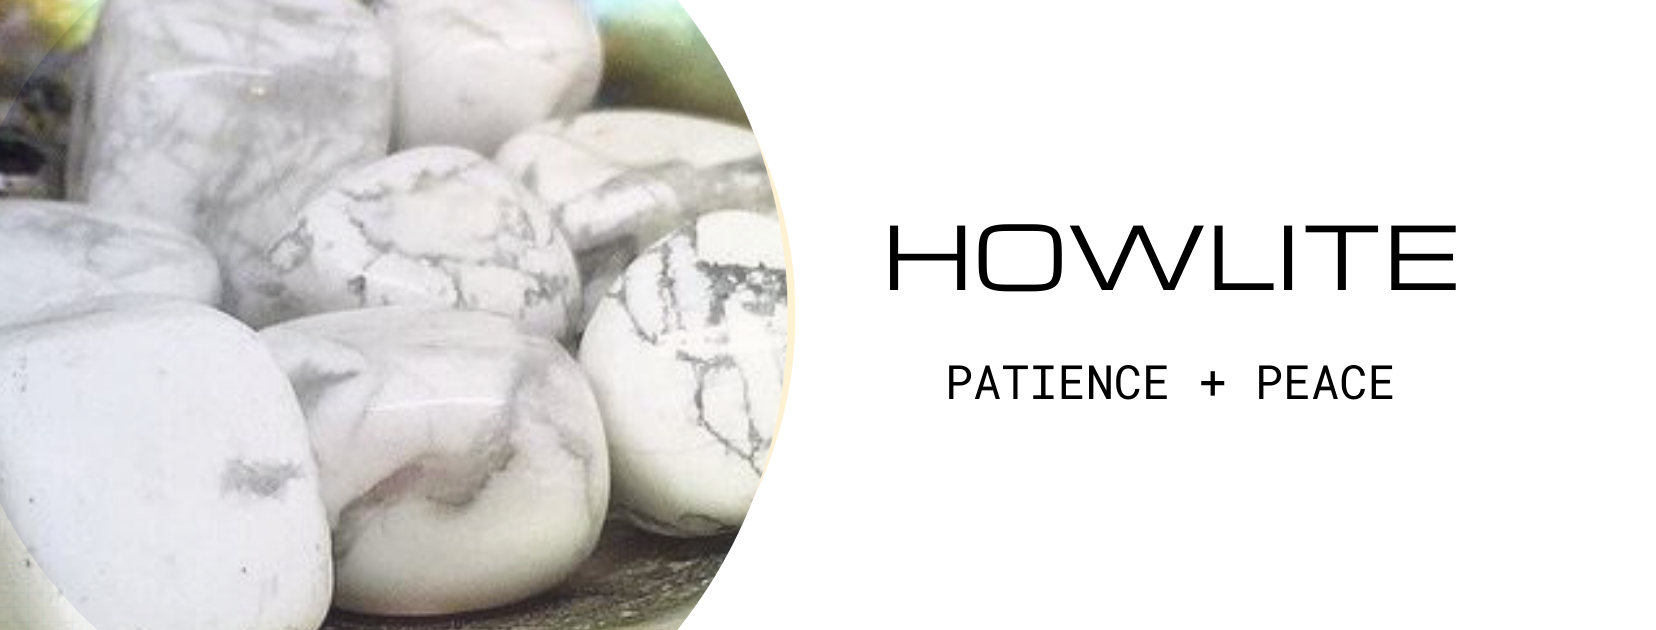 Howlite Healing Properties | Howlite Meaning | Benefits Of Howlite - Magic Crystals